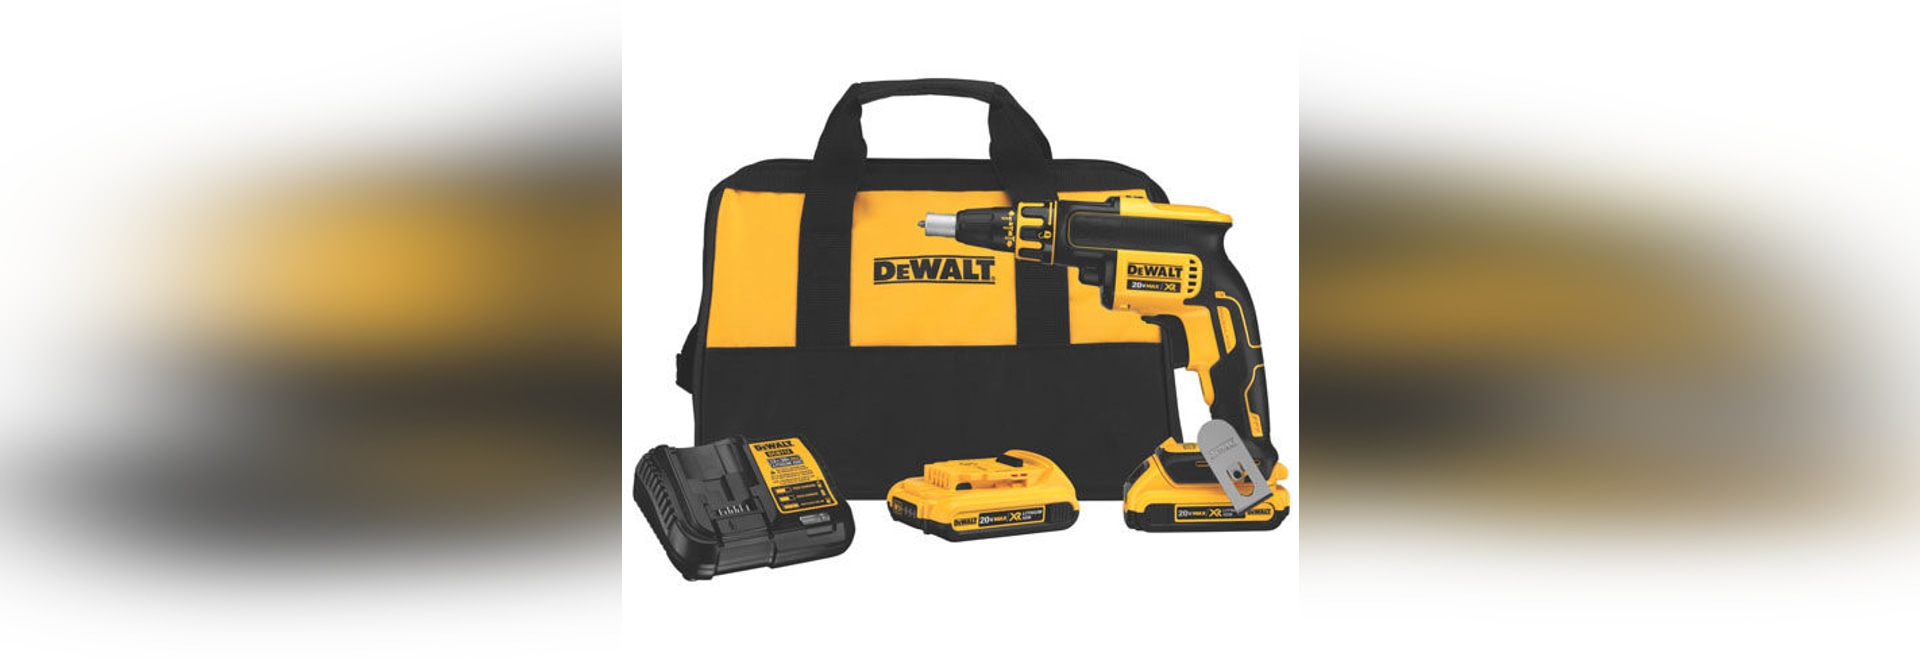 NEW: brushless electric screwdriver by DEWALT Industrial Tool